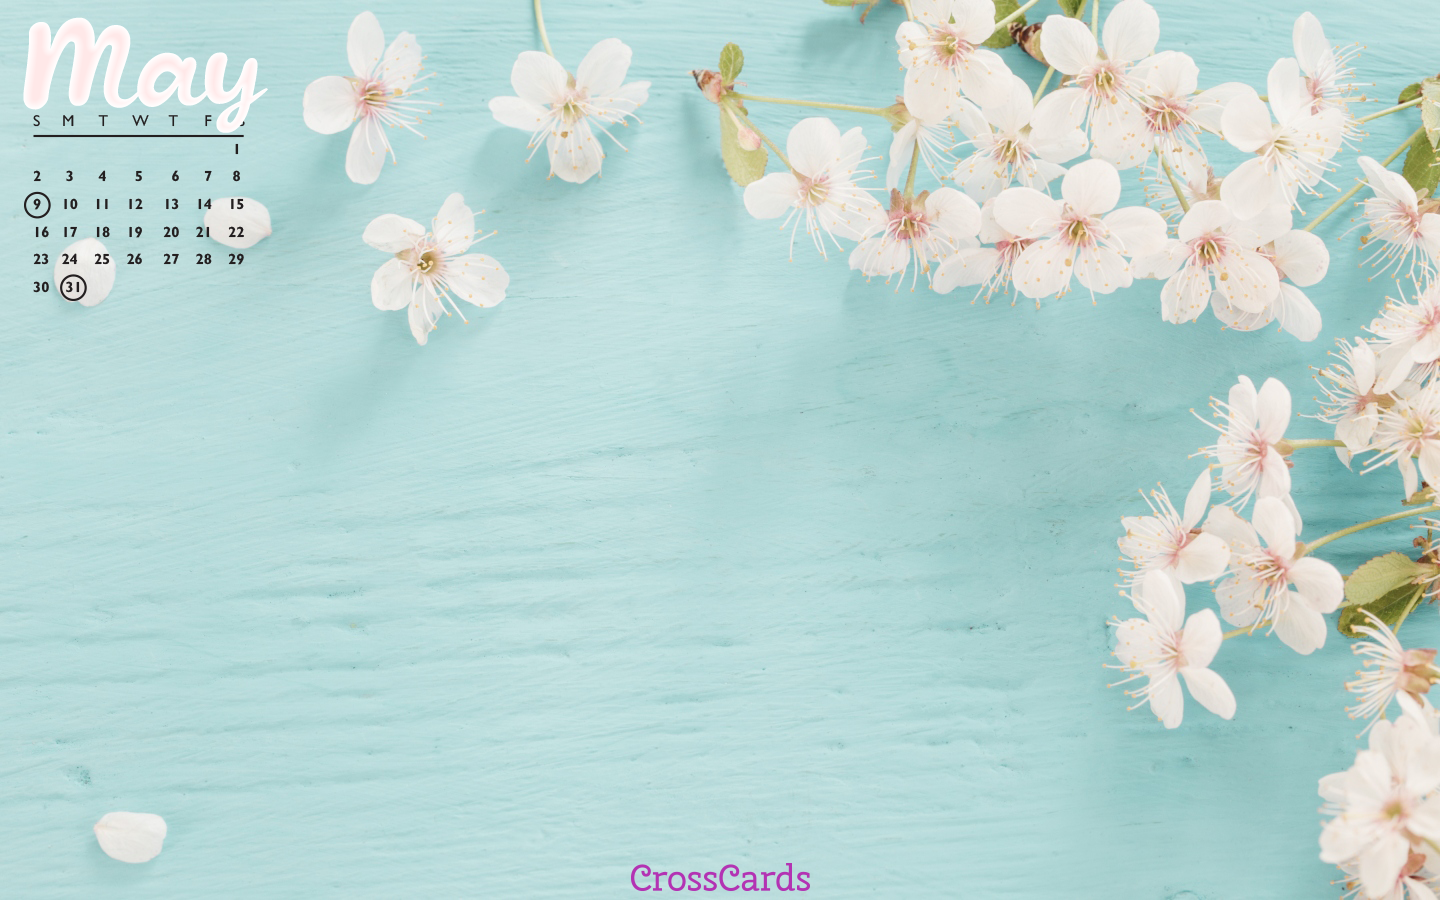 May 2021 - Floral mobile phone wallpaper